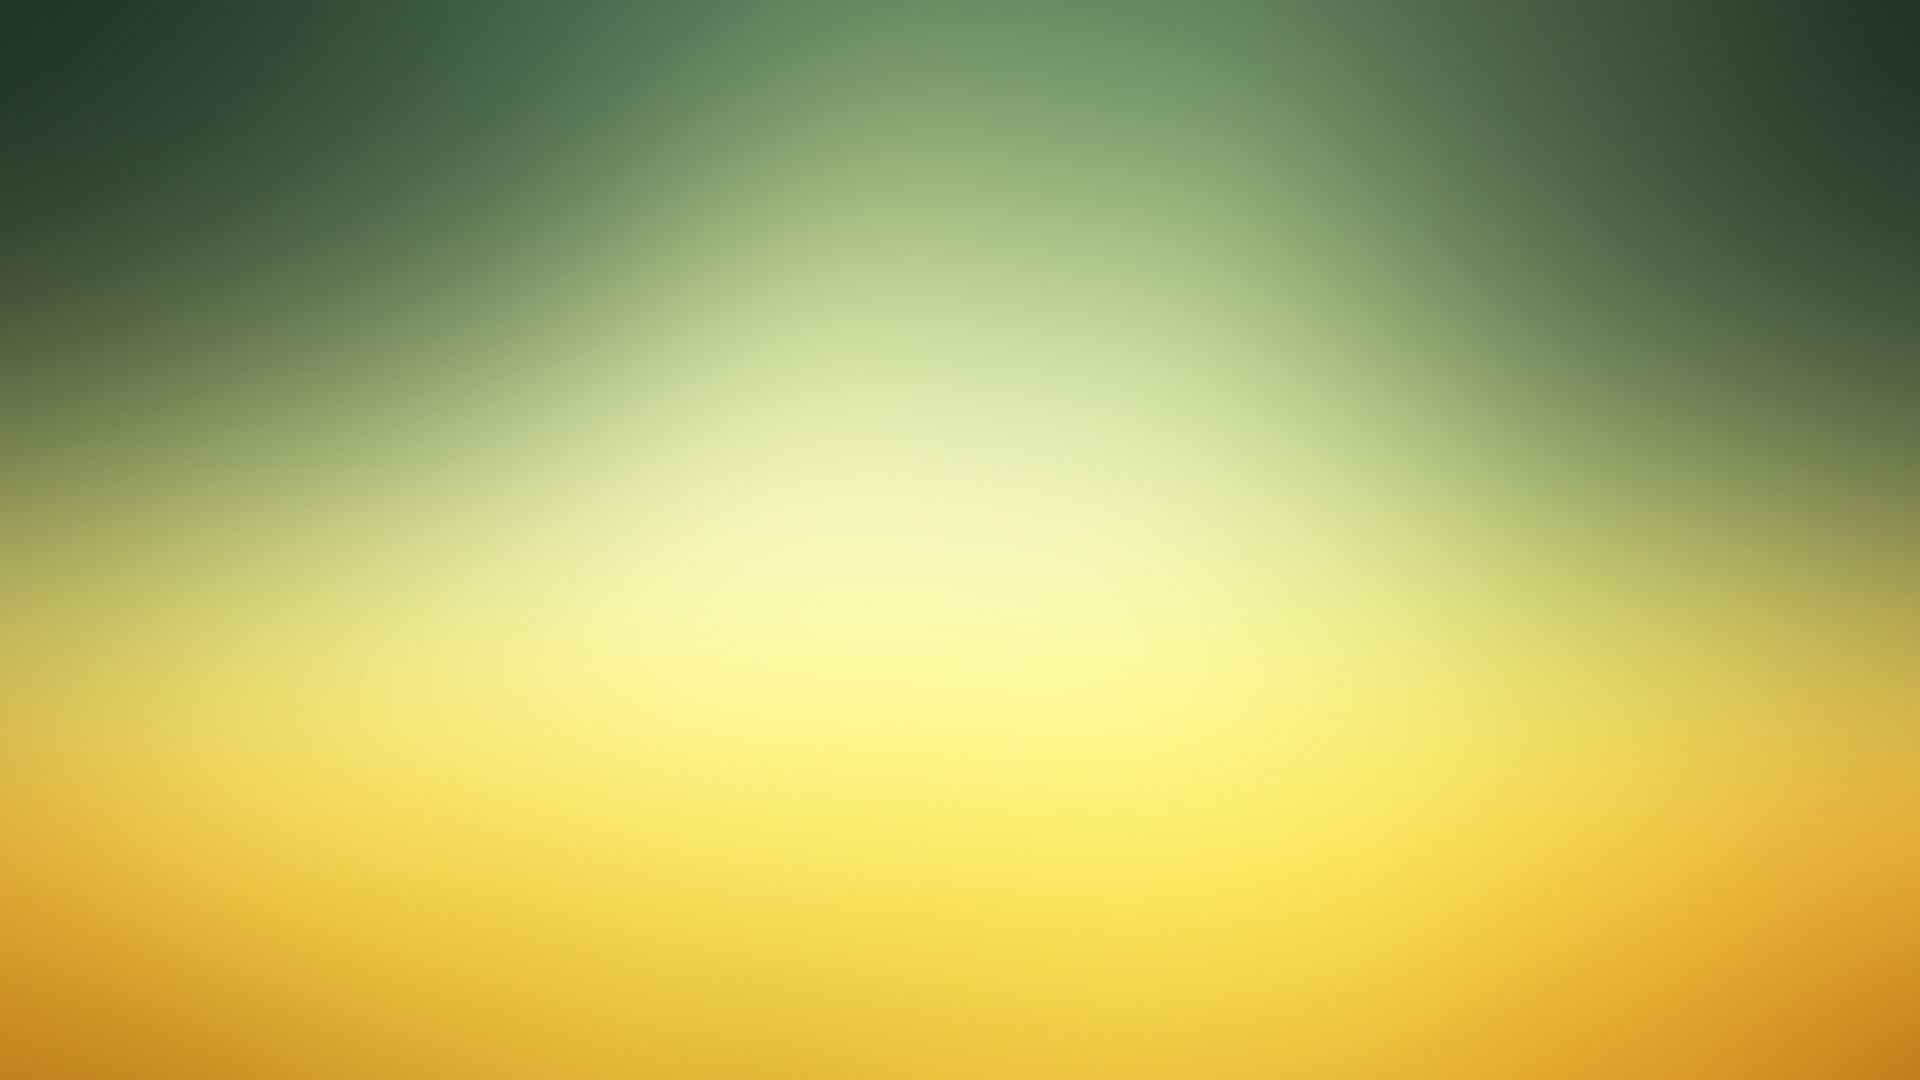 HD Gradient Backgrounds